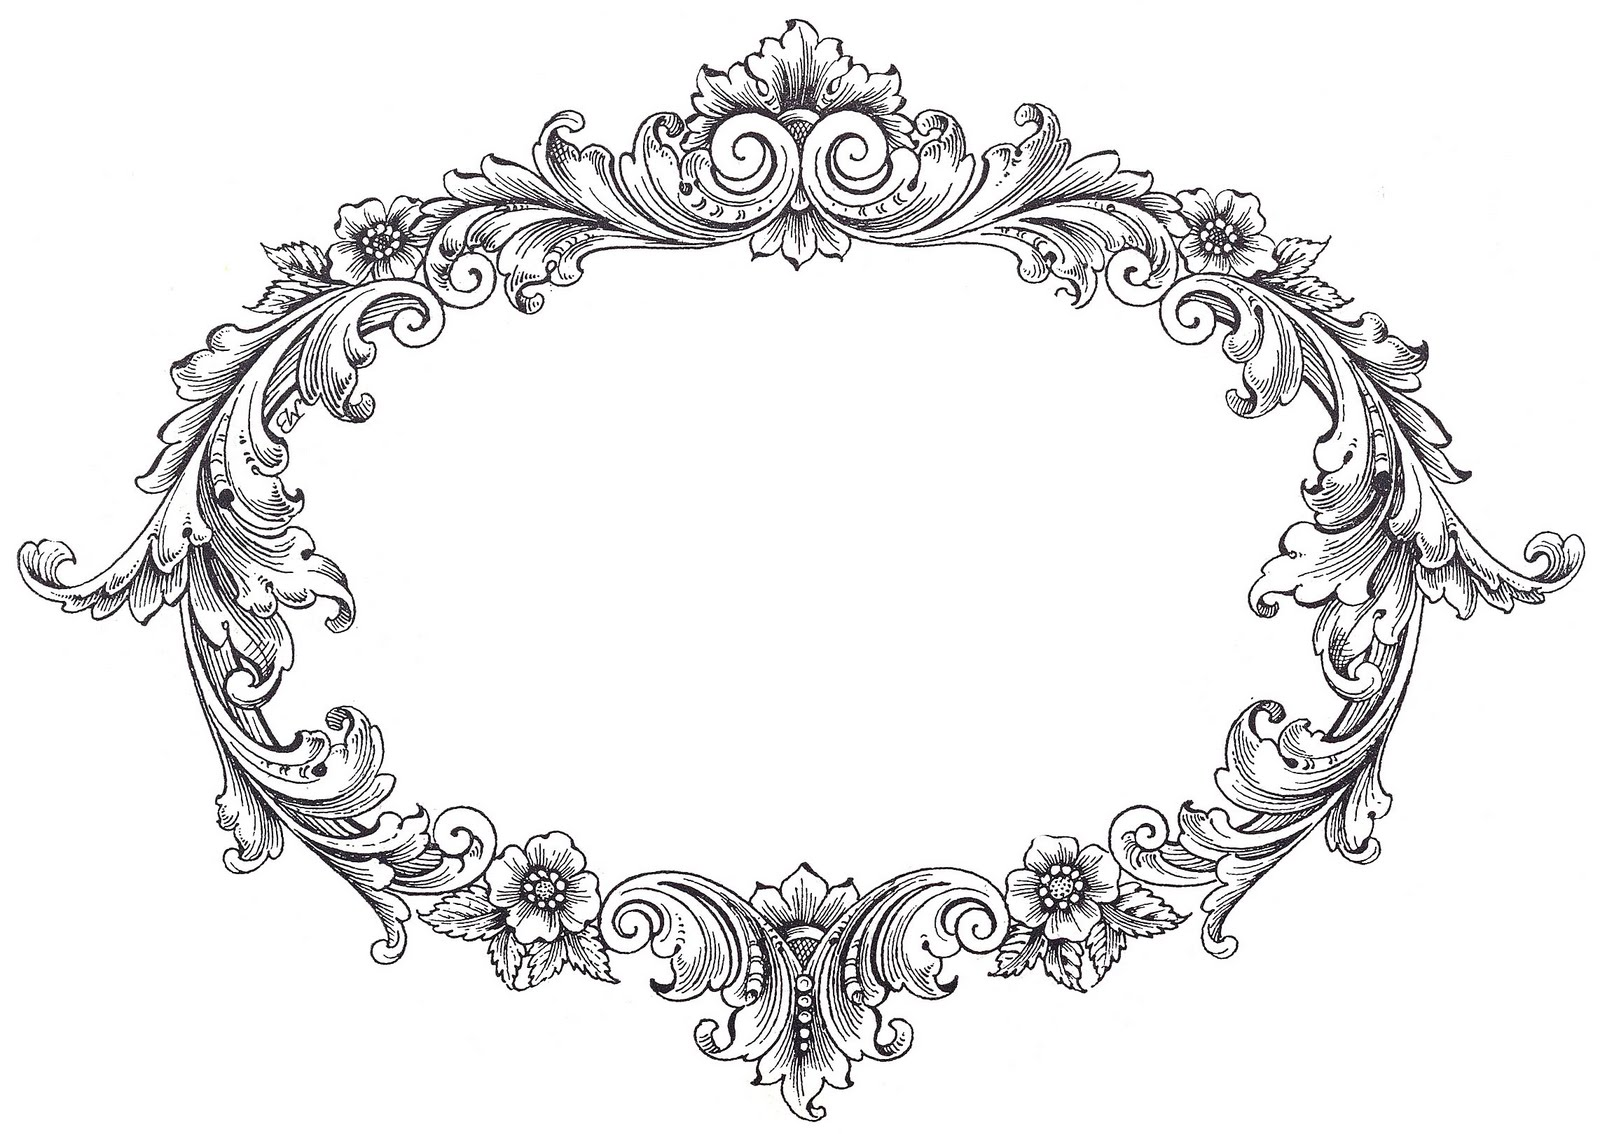 Thorns clipart antique frame Oval Art Graphics Clip Fancy